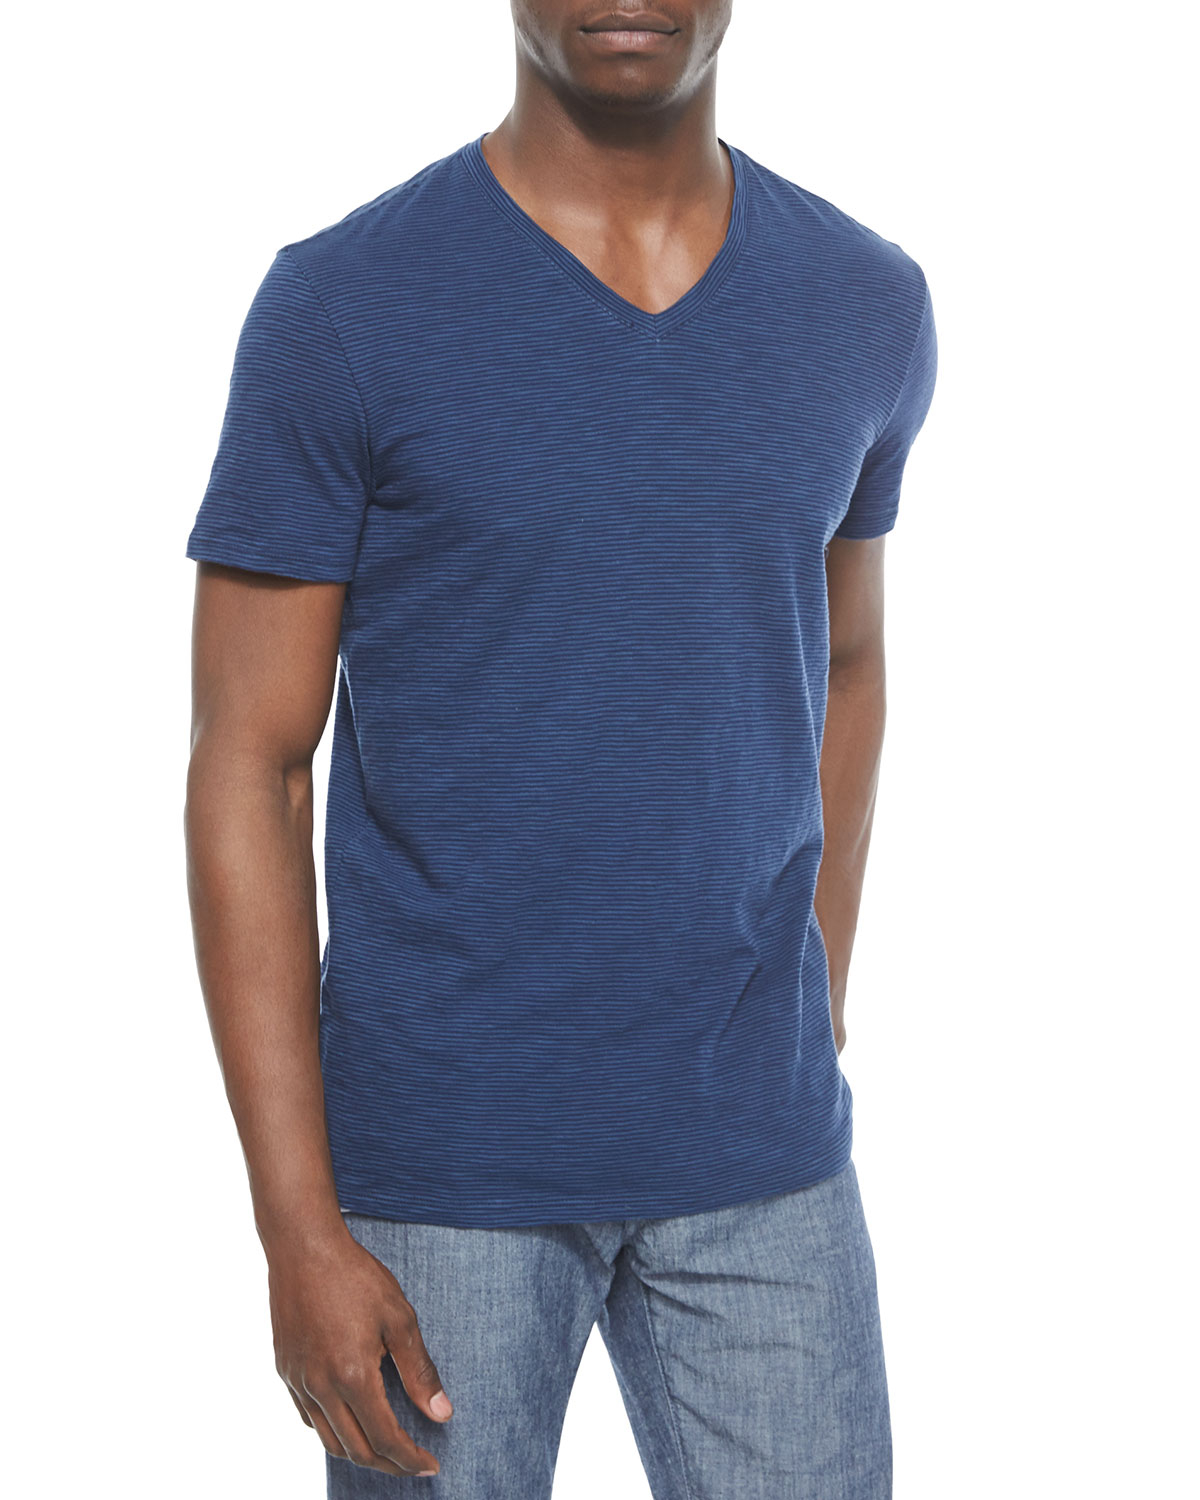 Vince short sleeve feeder striped tee in blue for men lyst for Vince tee shirts sale